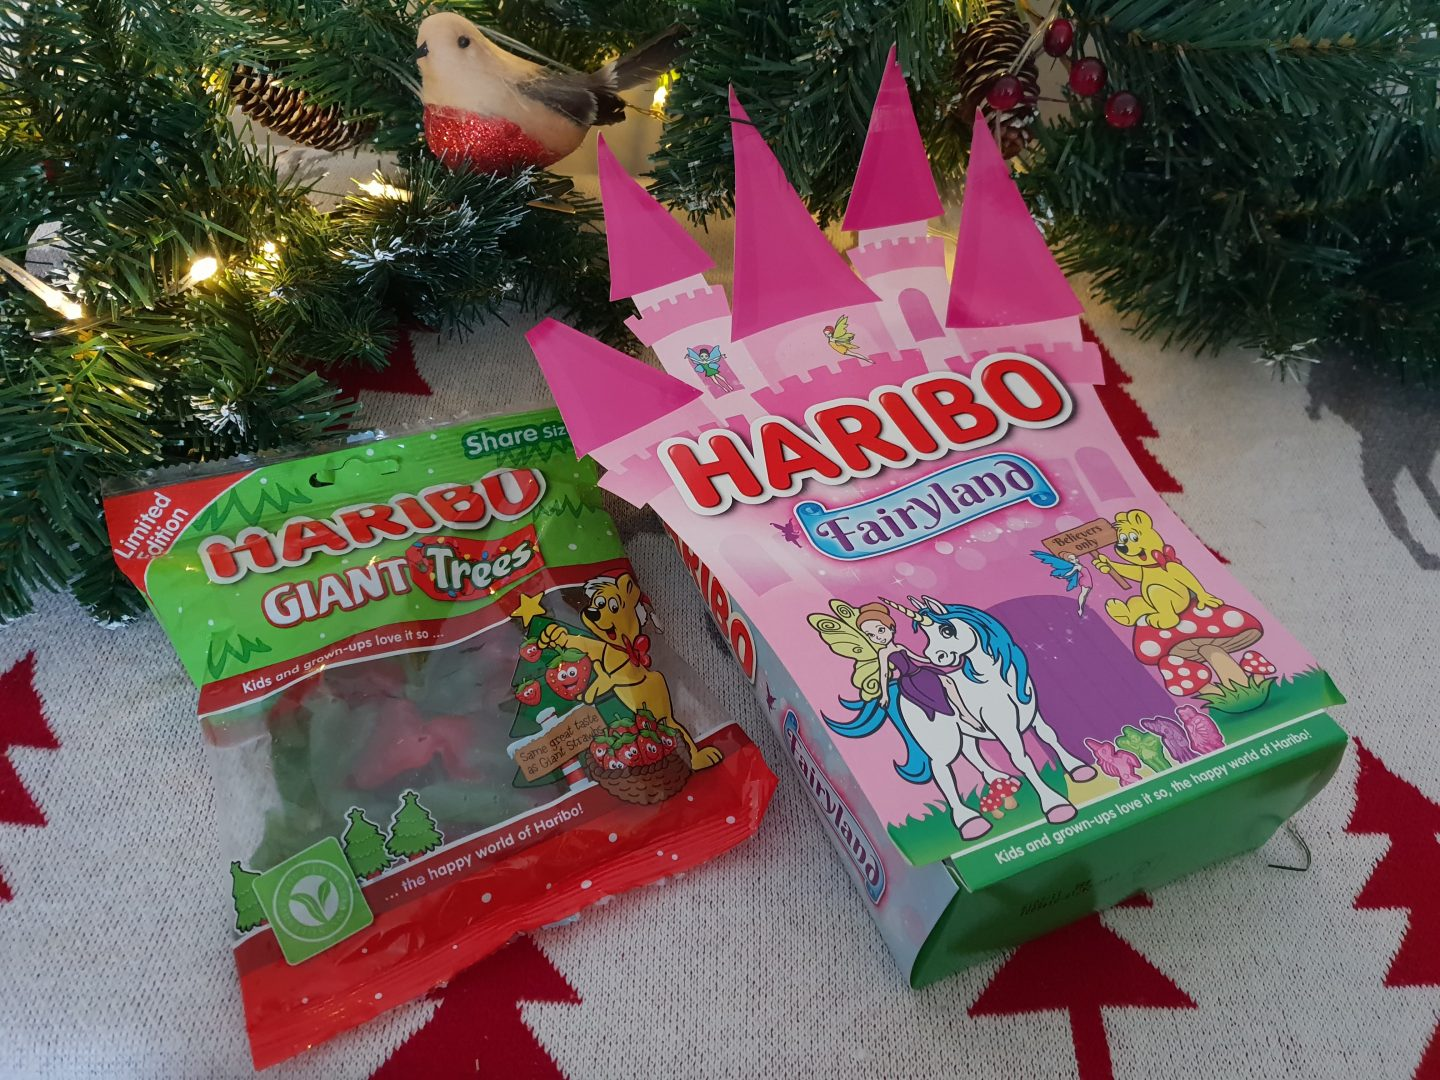 Haribo Giant Trees and Fairyland